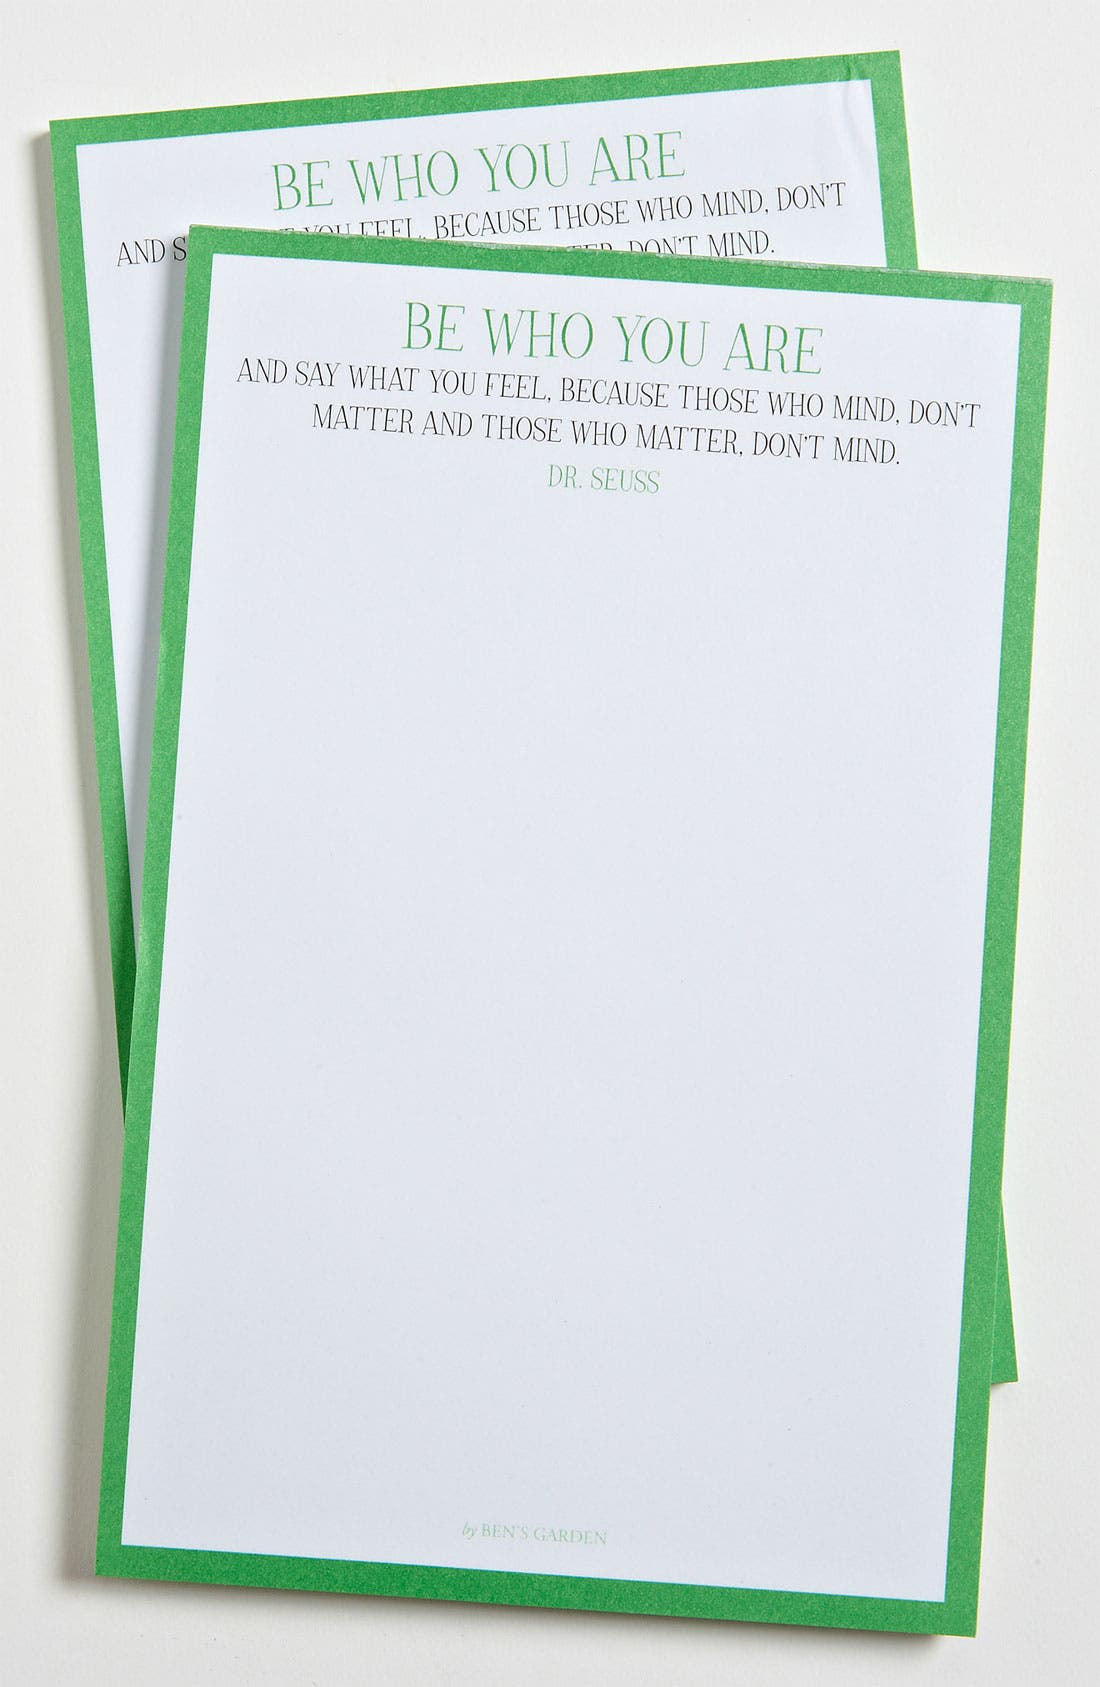 Alternate Image 1 Selected - Ben's Garden 'Be Who You Are' Notepads (2-Pack)